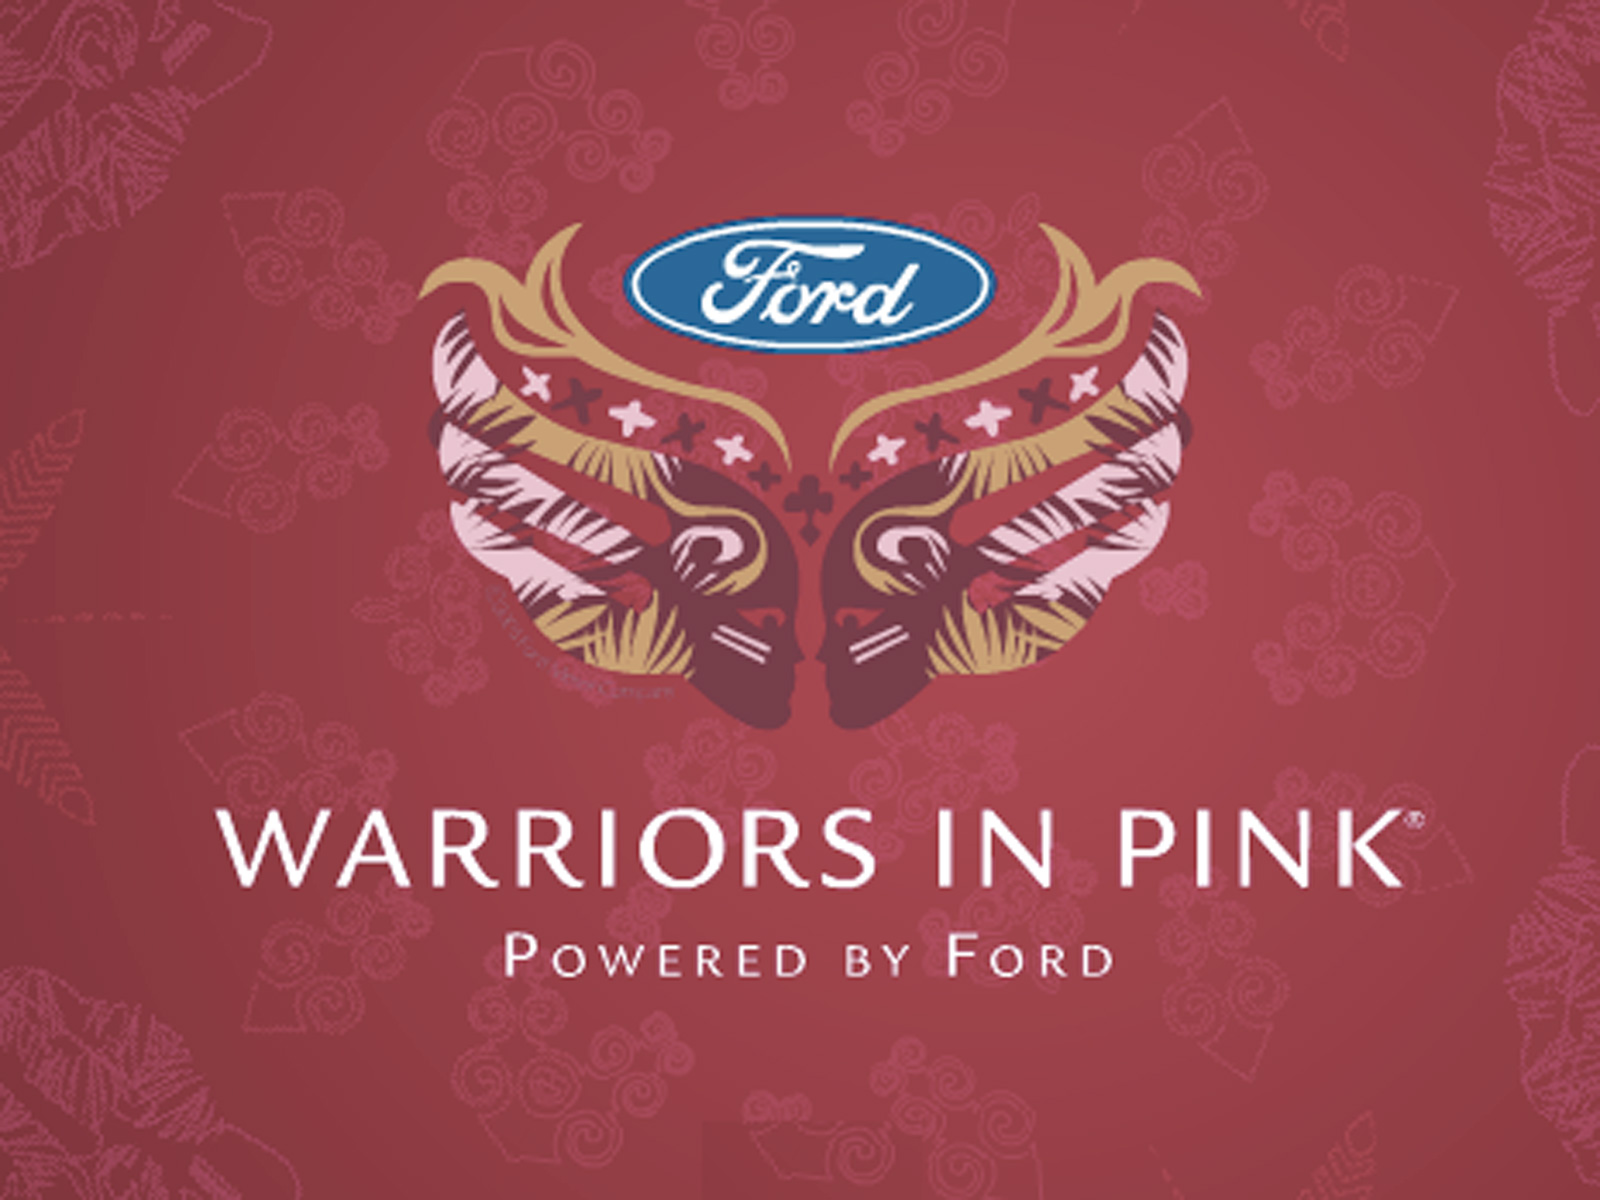 warriors-in-pink-ford (1).jpg